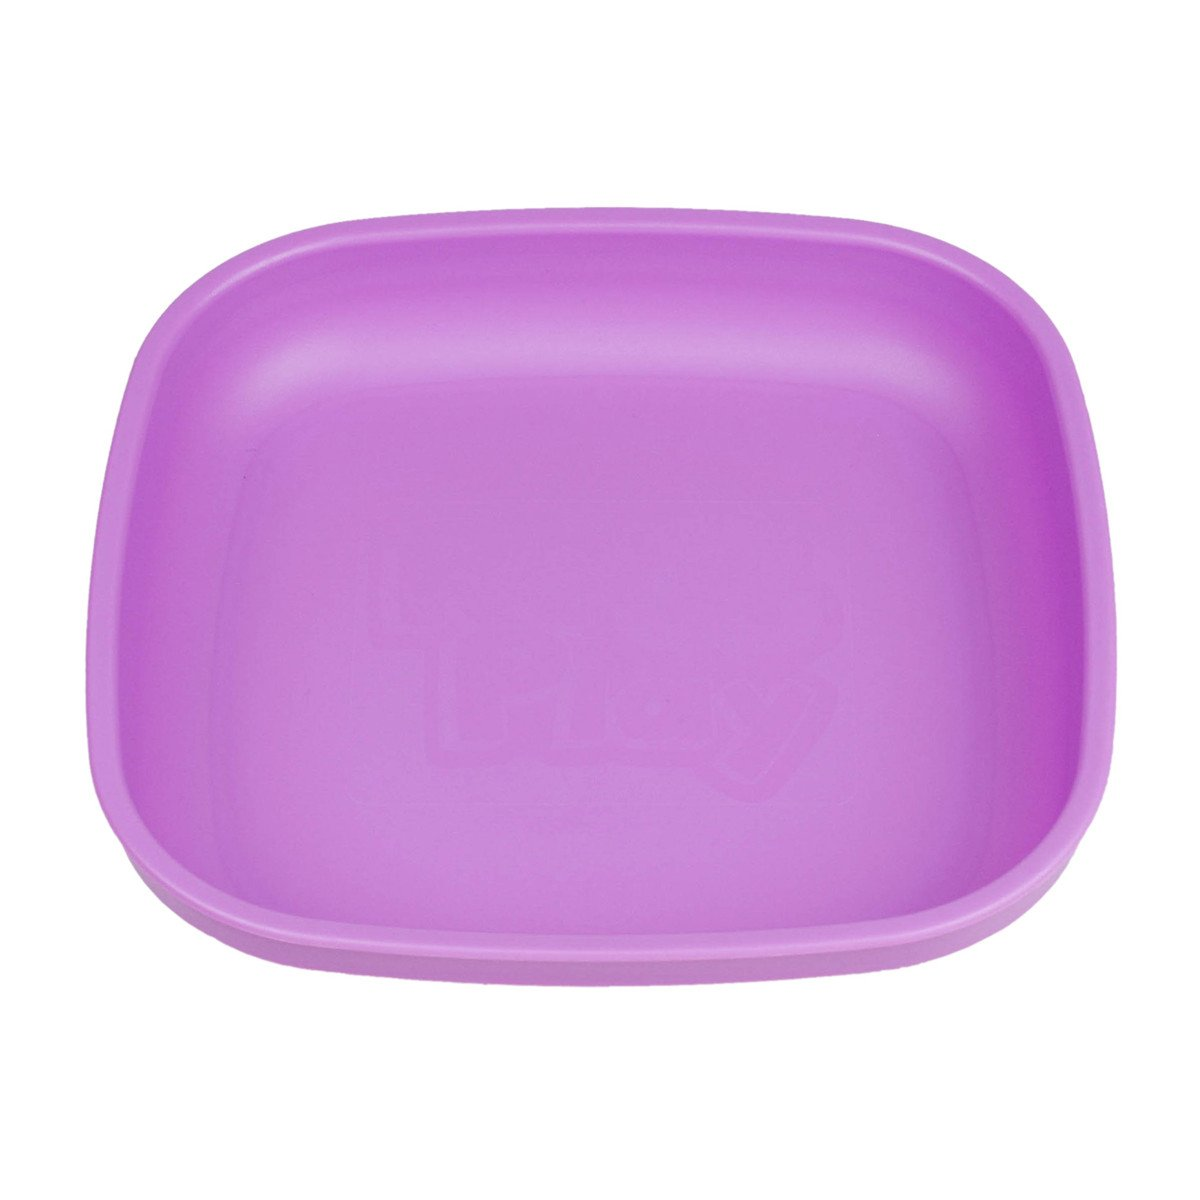 Replay Plate Replay Dinnerware Purple at Little Earth Nest Eco Shop